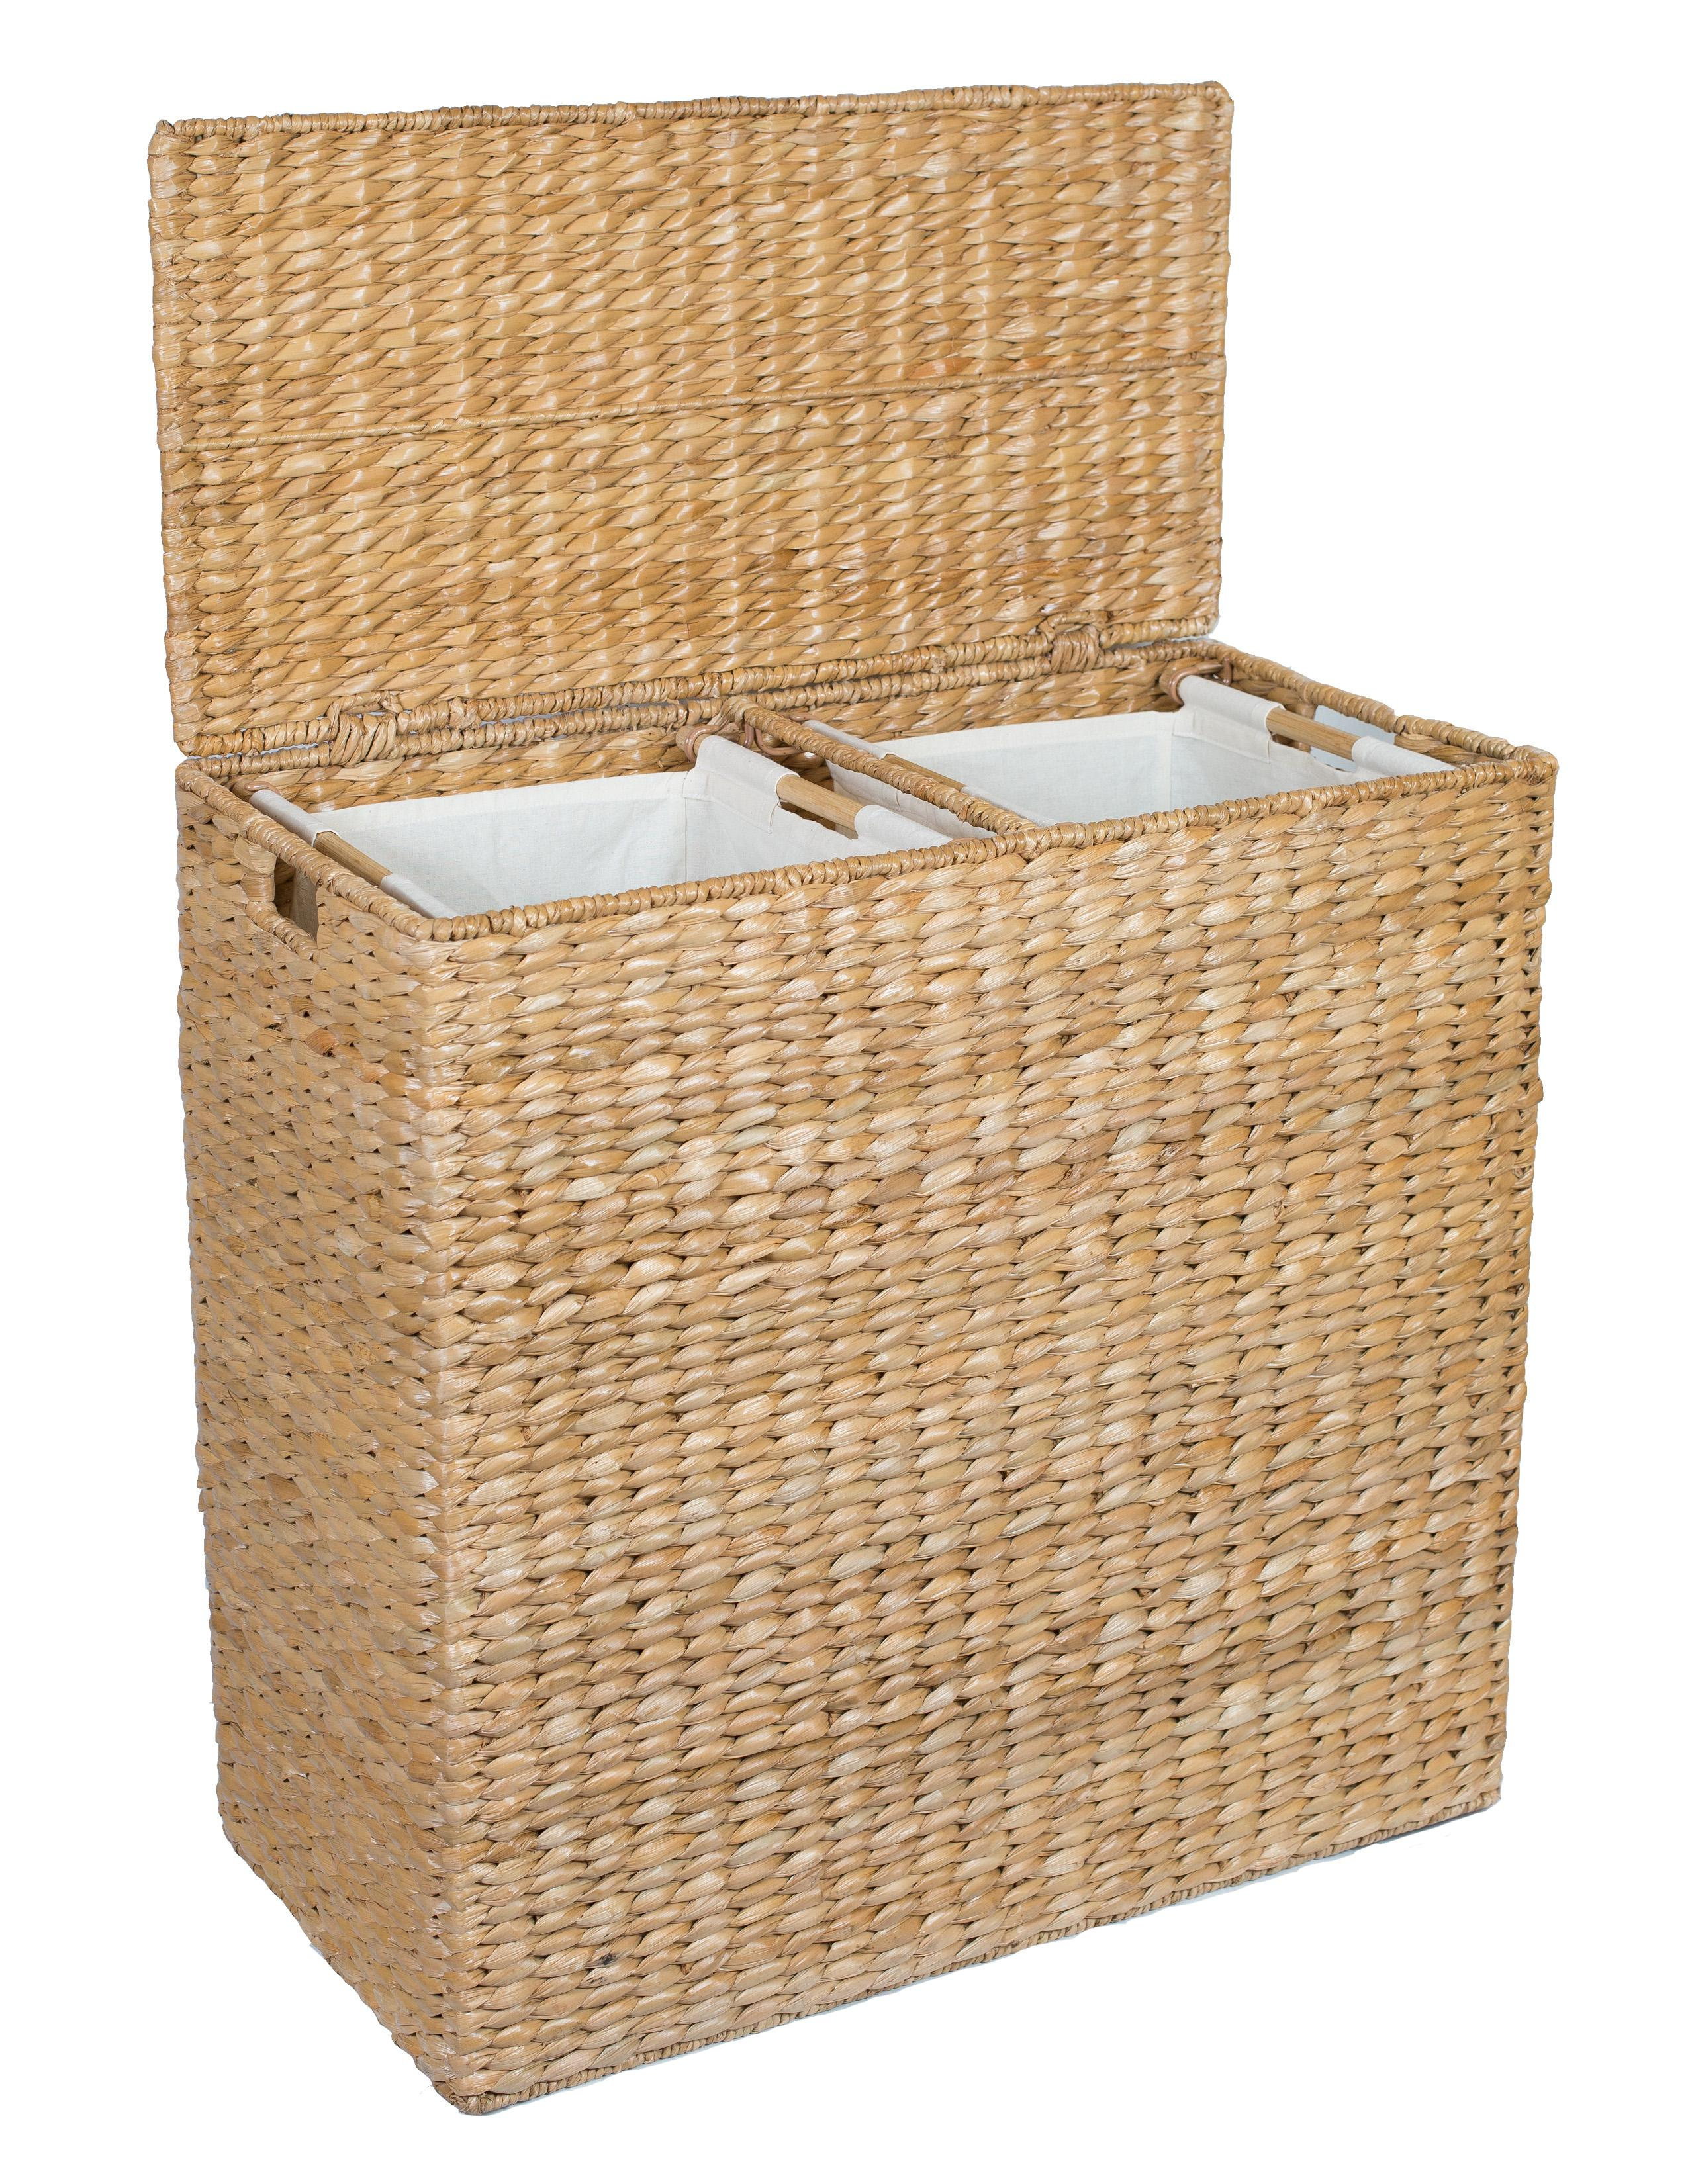 Hamper laundry hamper clothes hamper seagrass hamper wicker hamper wicker clothes hamper - Wicker hampers with liners ...